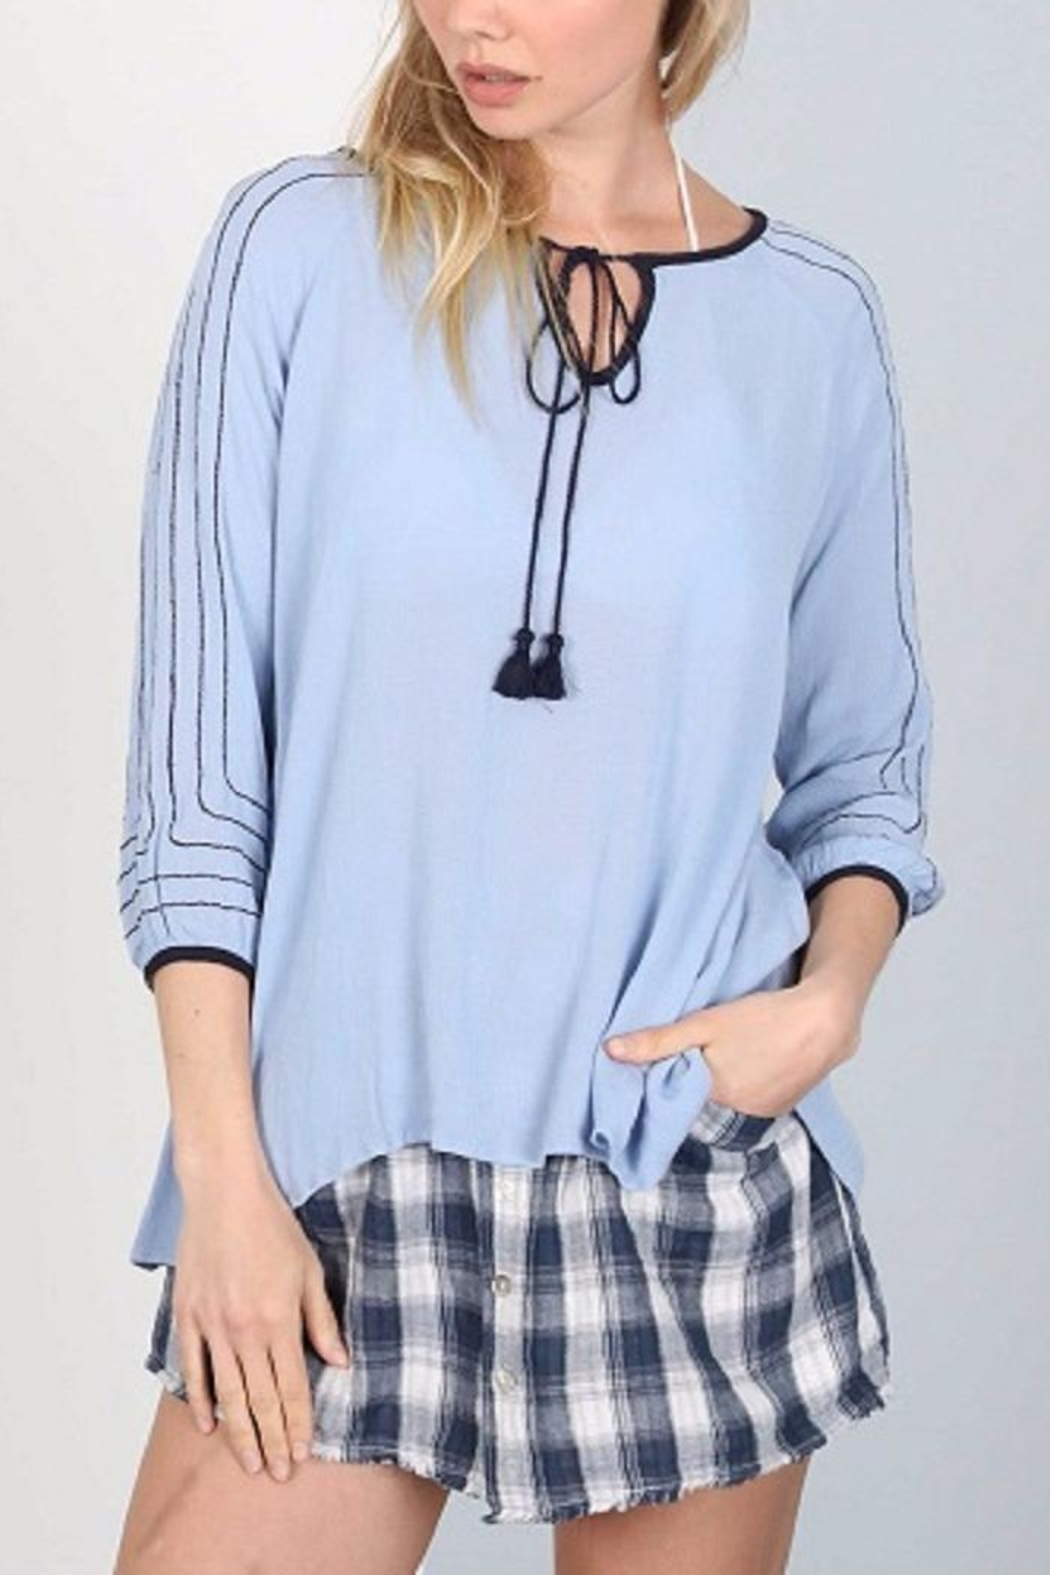 POL Raglan Sleeve Top from Texas by Erica Rose Boutique